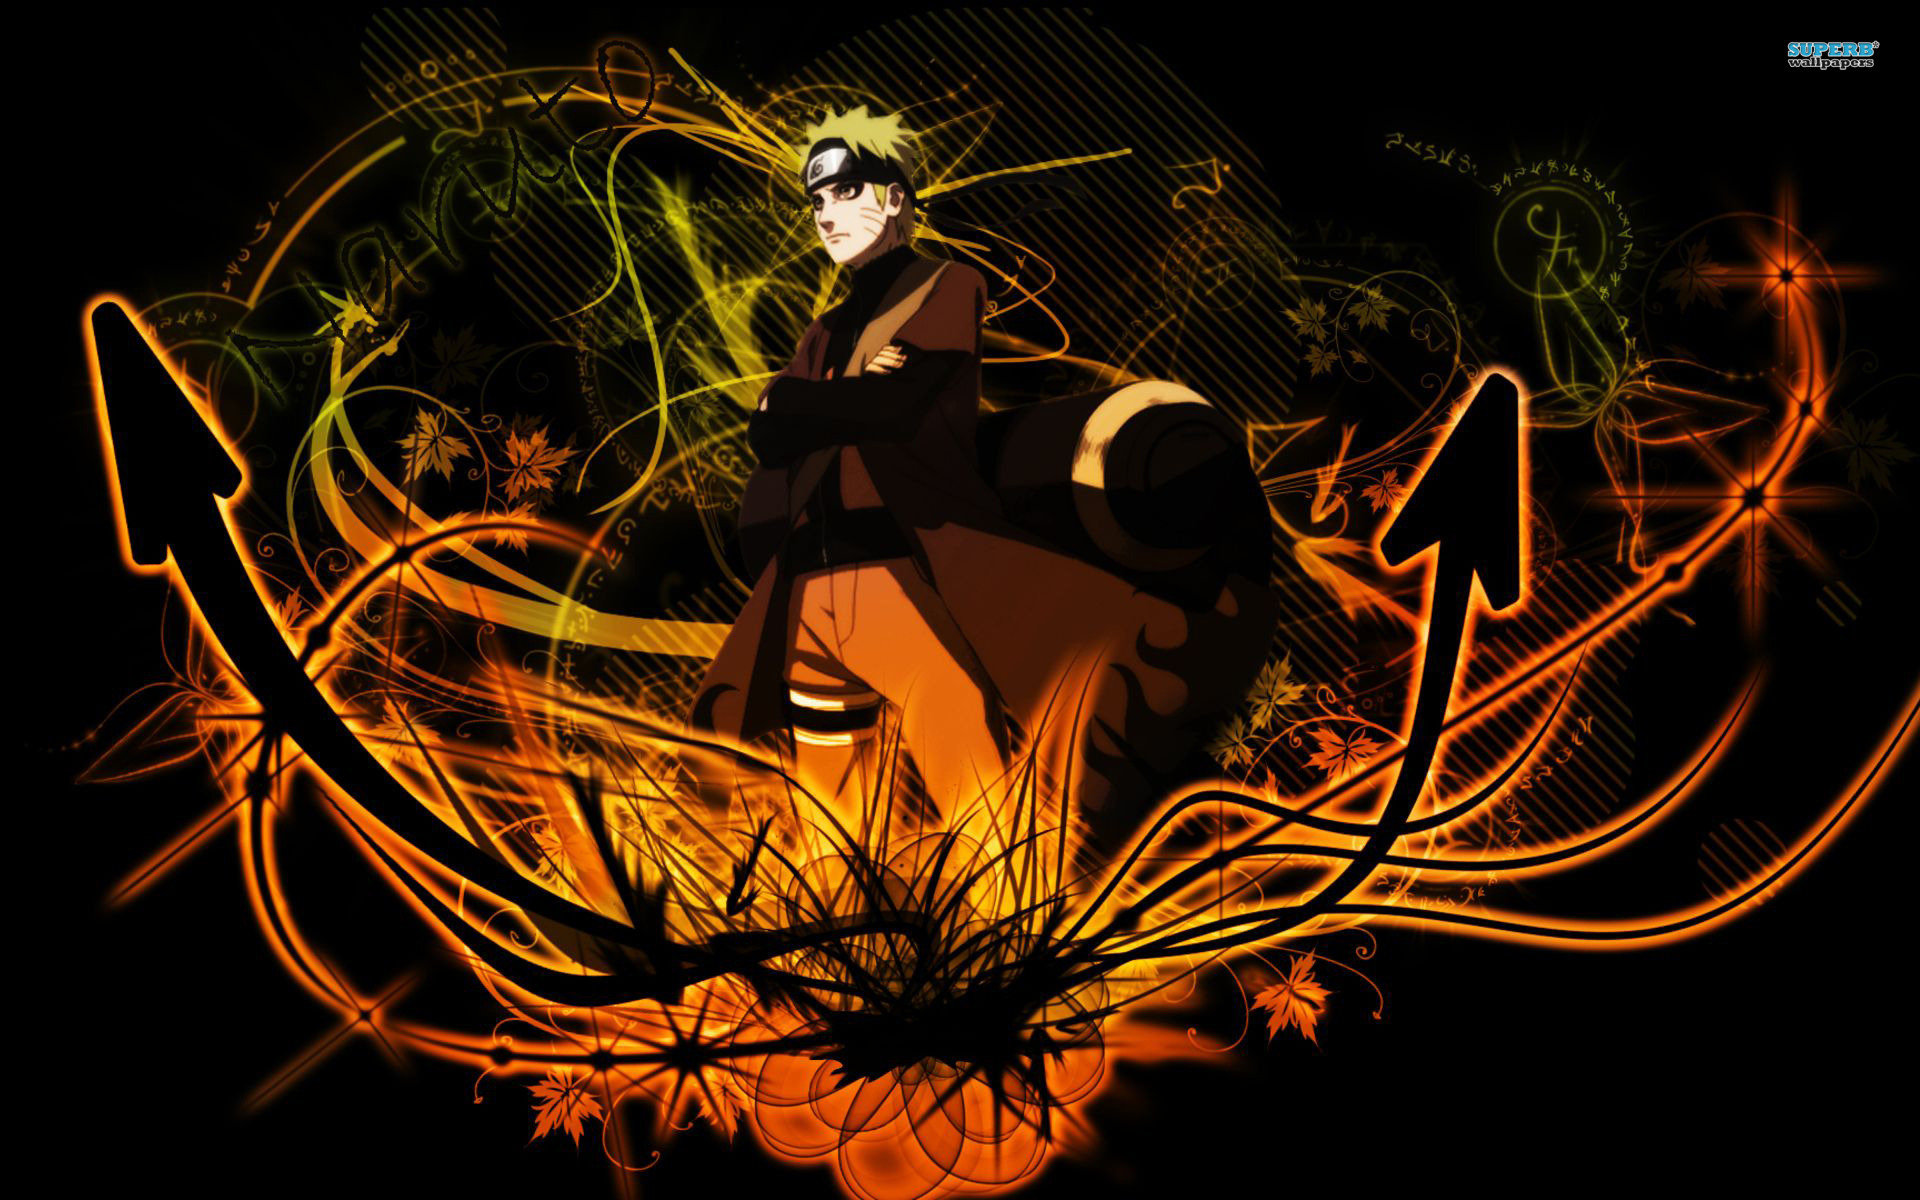 Naruto wallpaper 1920x1200